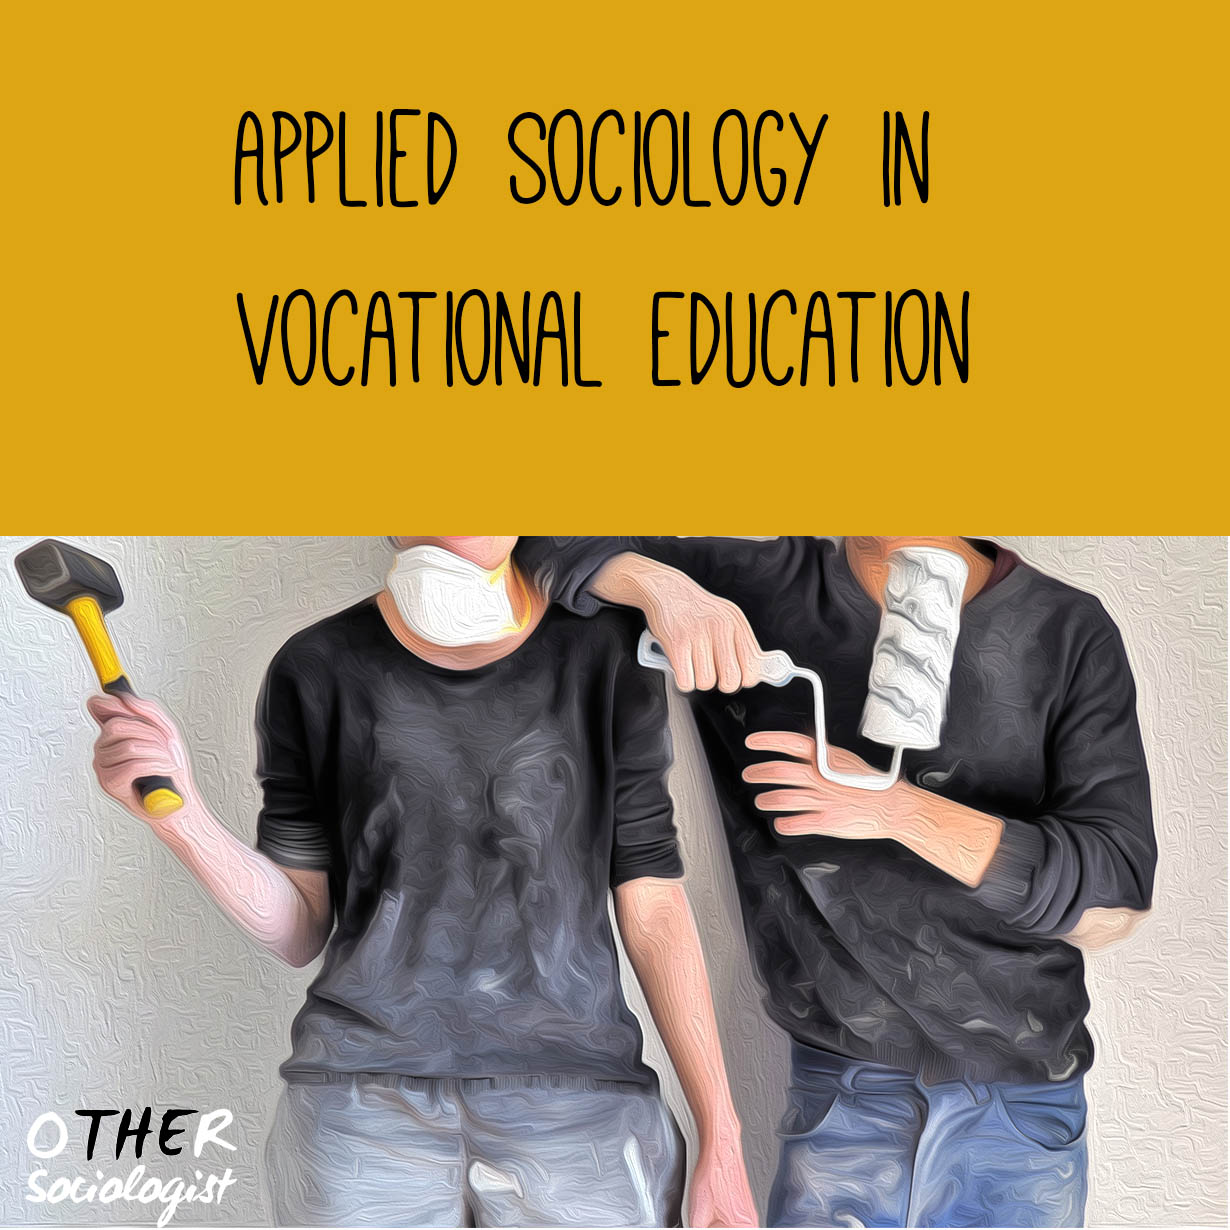 Applied Sociology in Vocational Education